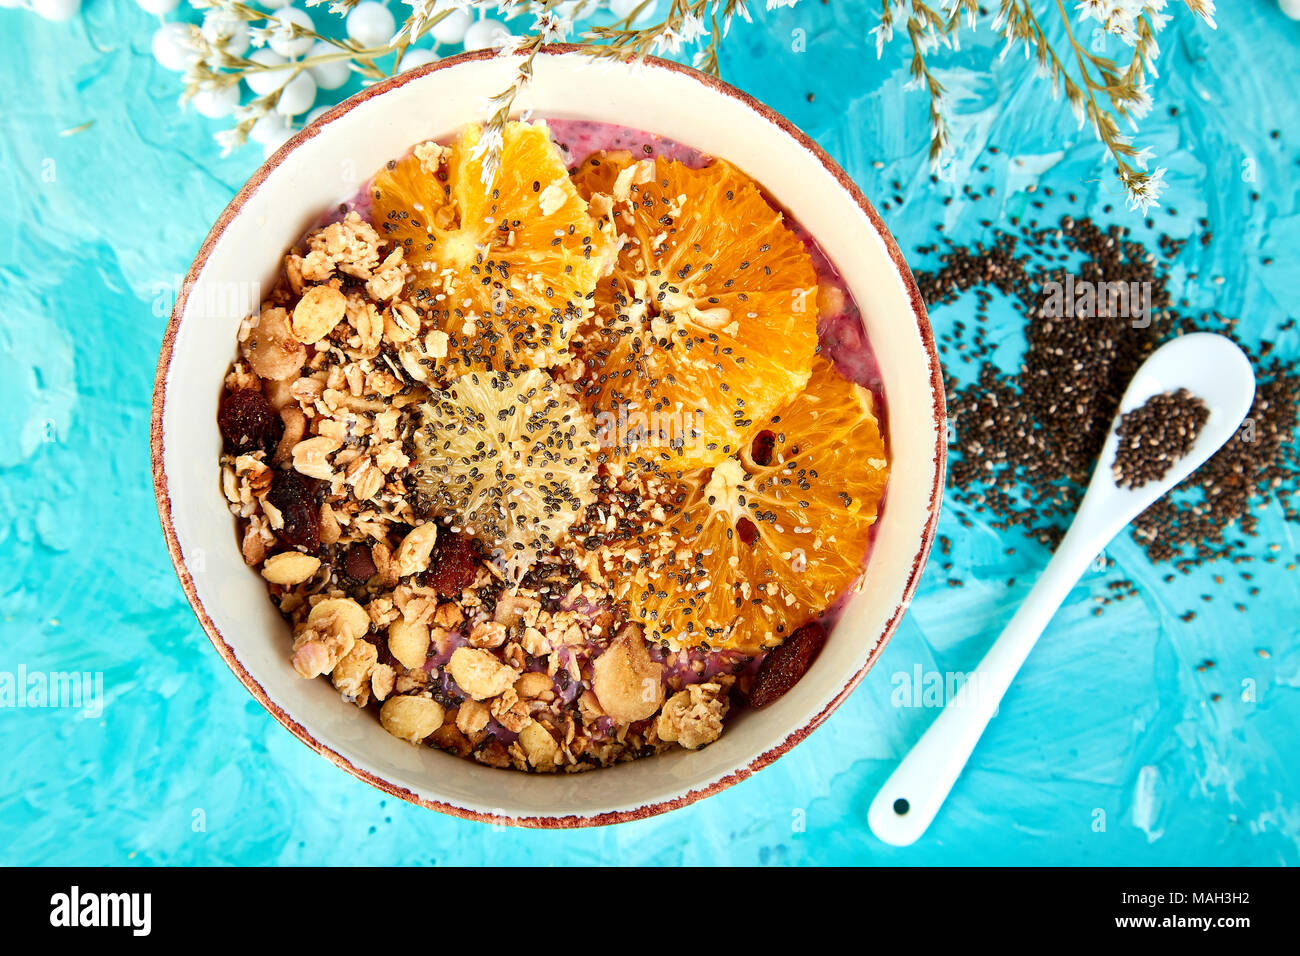 Detox and healthy superfoods breakfast bowl concept. Vegan coconut milk chia seeds pudding with granola and citrus. top view, flat lay. - Stock Image